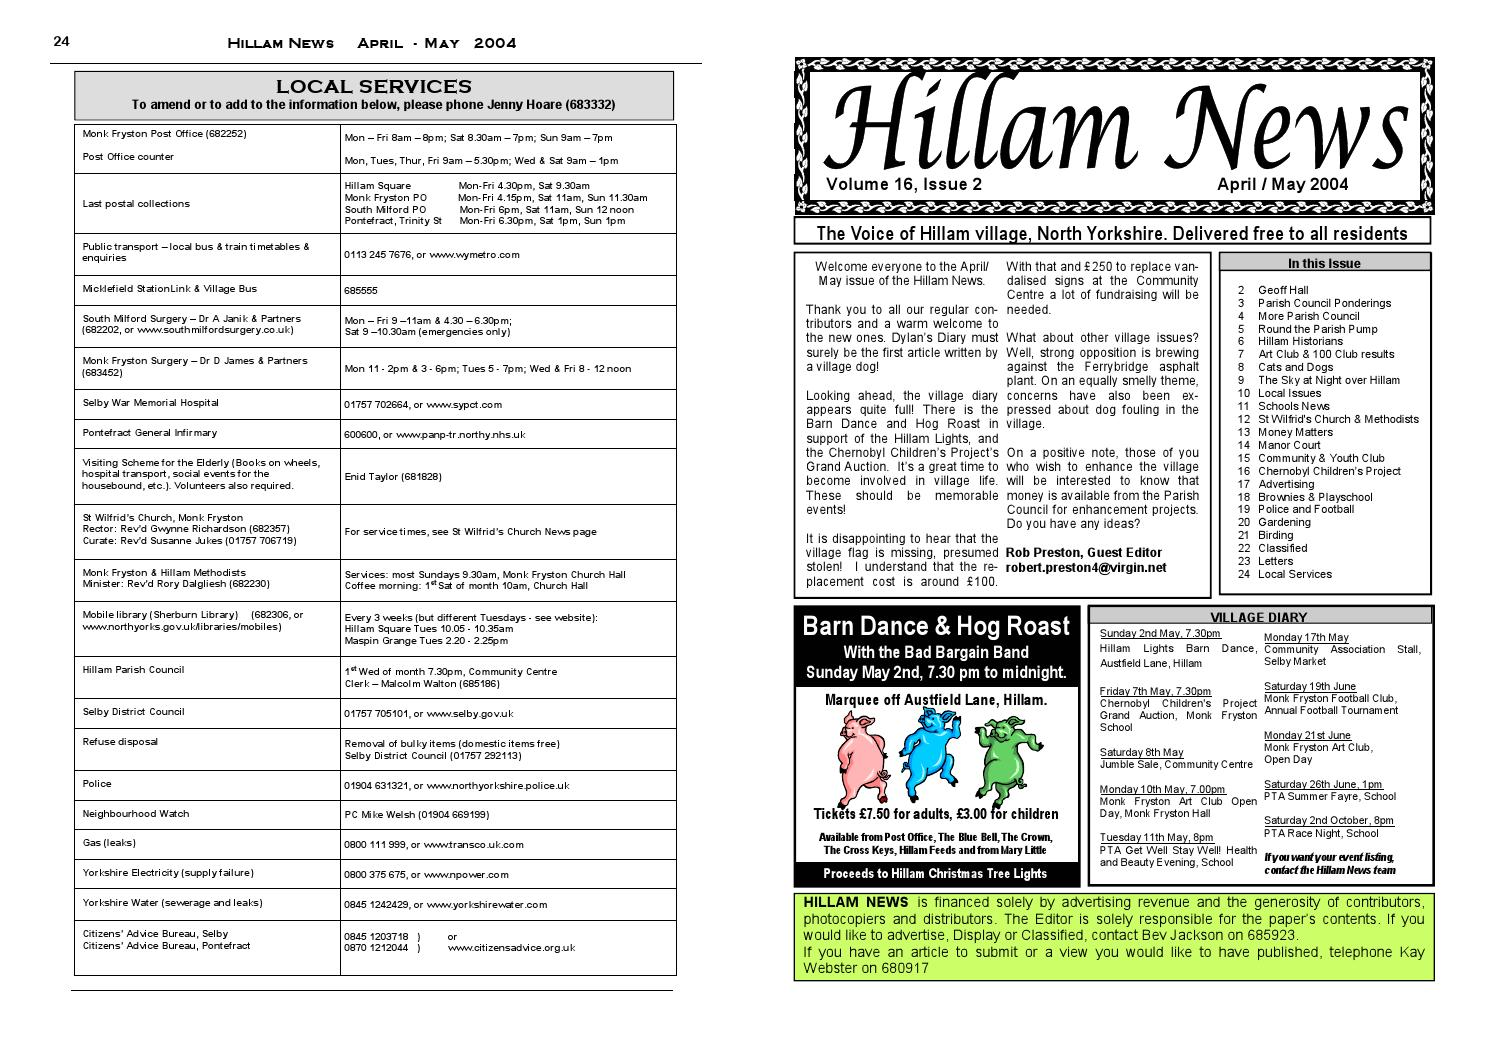 Hillam News April May 2004 by Hillam News - issuu